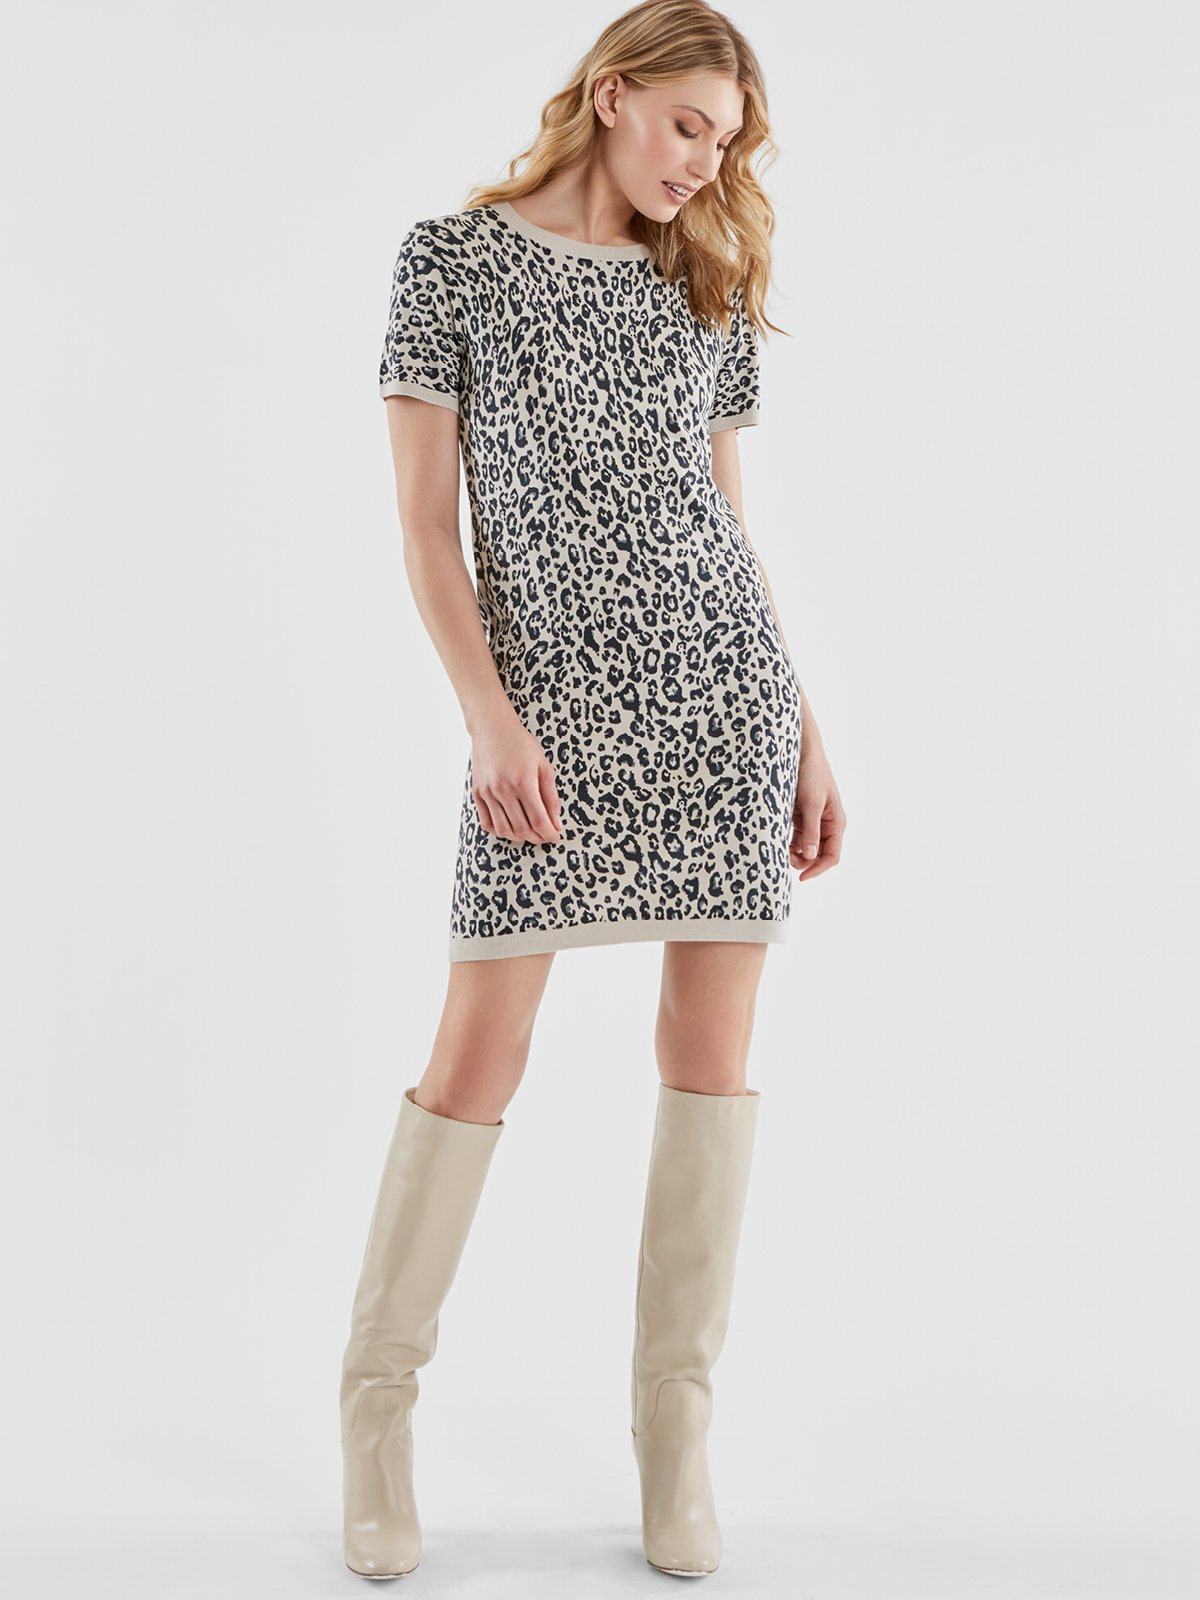 525 America Leopard Print Knit Dress